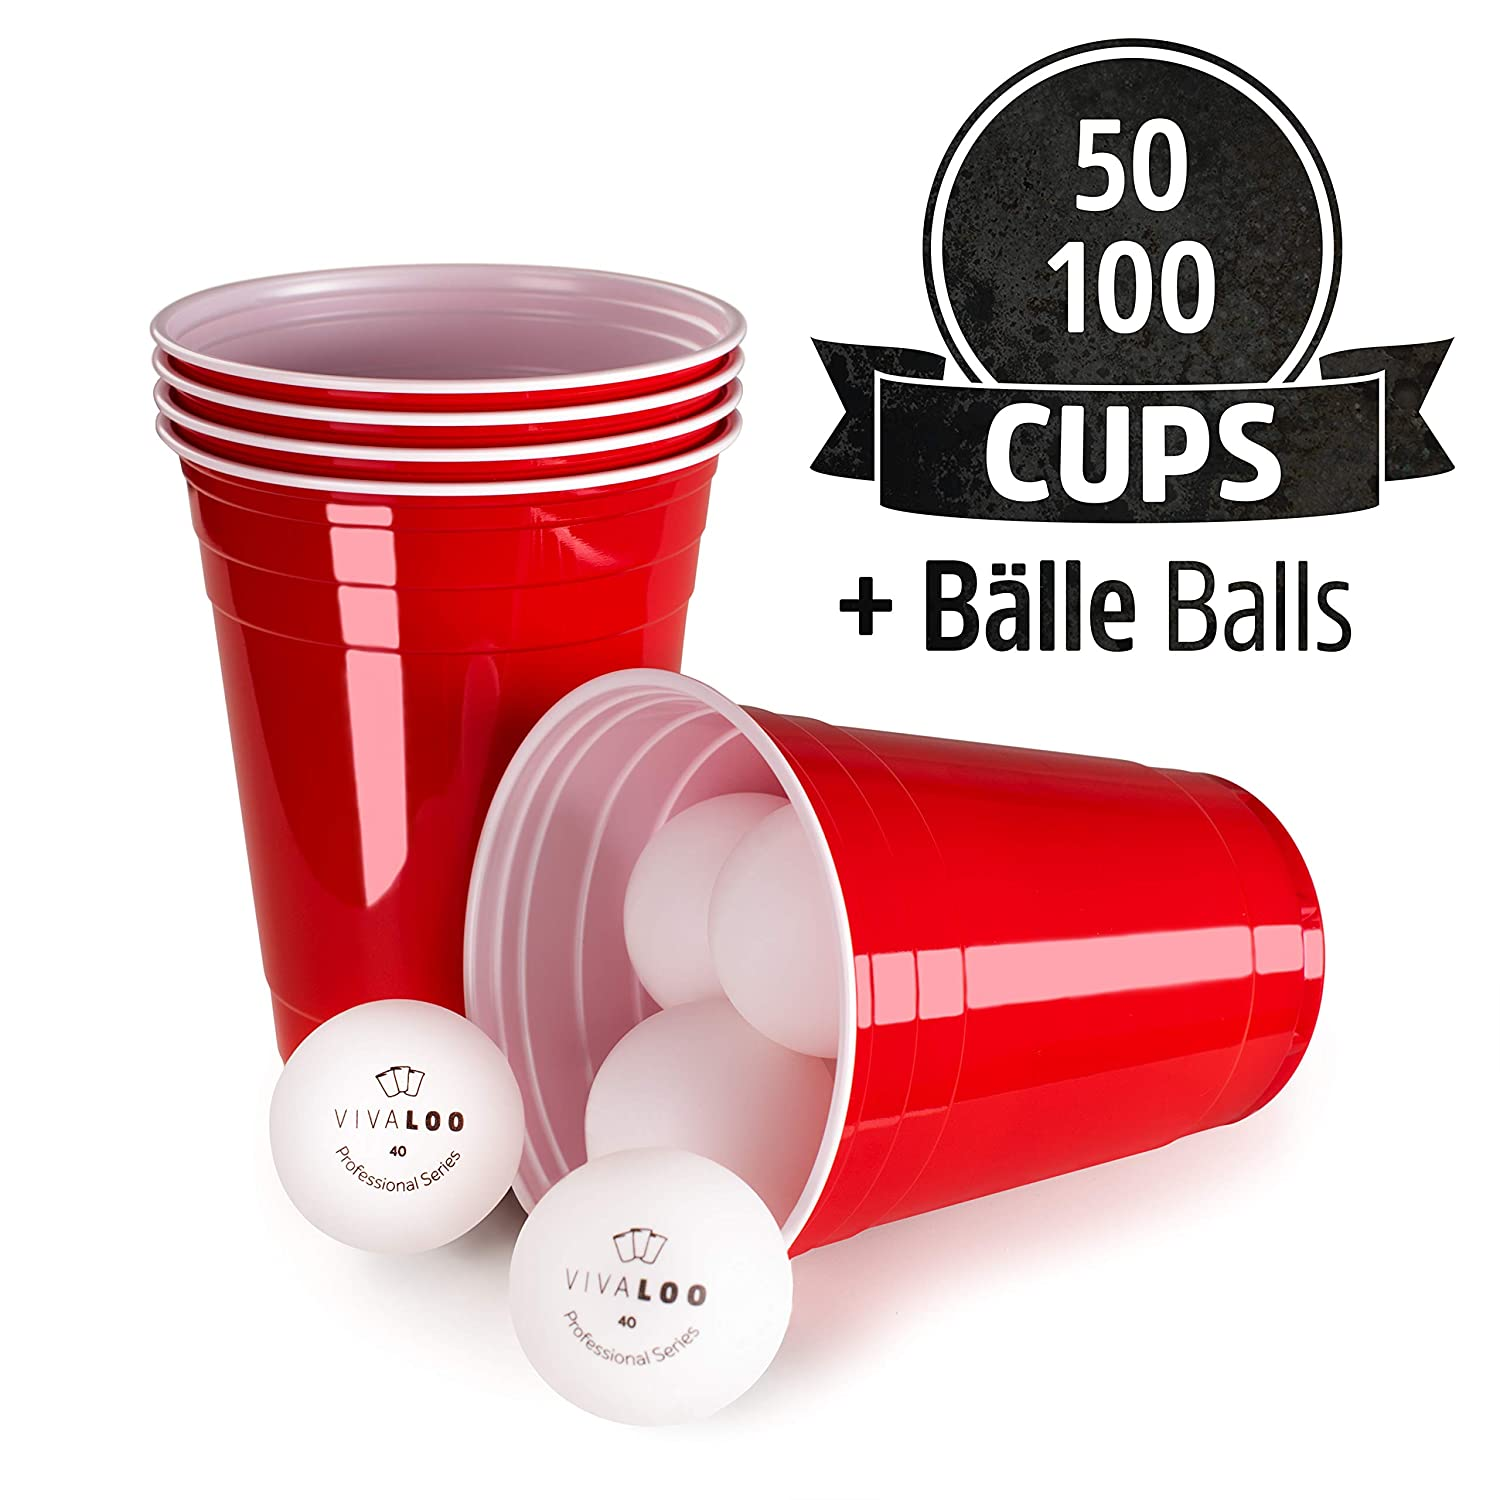 16 oz Pack of 50 Red Cups 50 Cups // 6 Balls VIVALOO Red Disposable Plastic Cups 455 ml 6 Beer Pong Balls